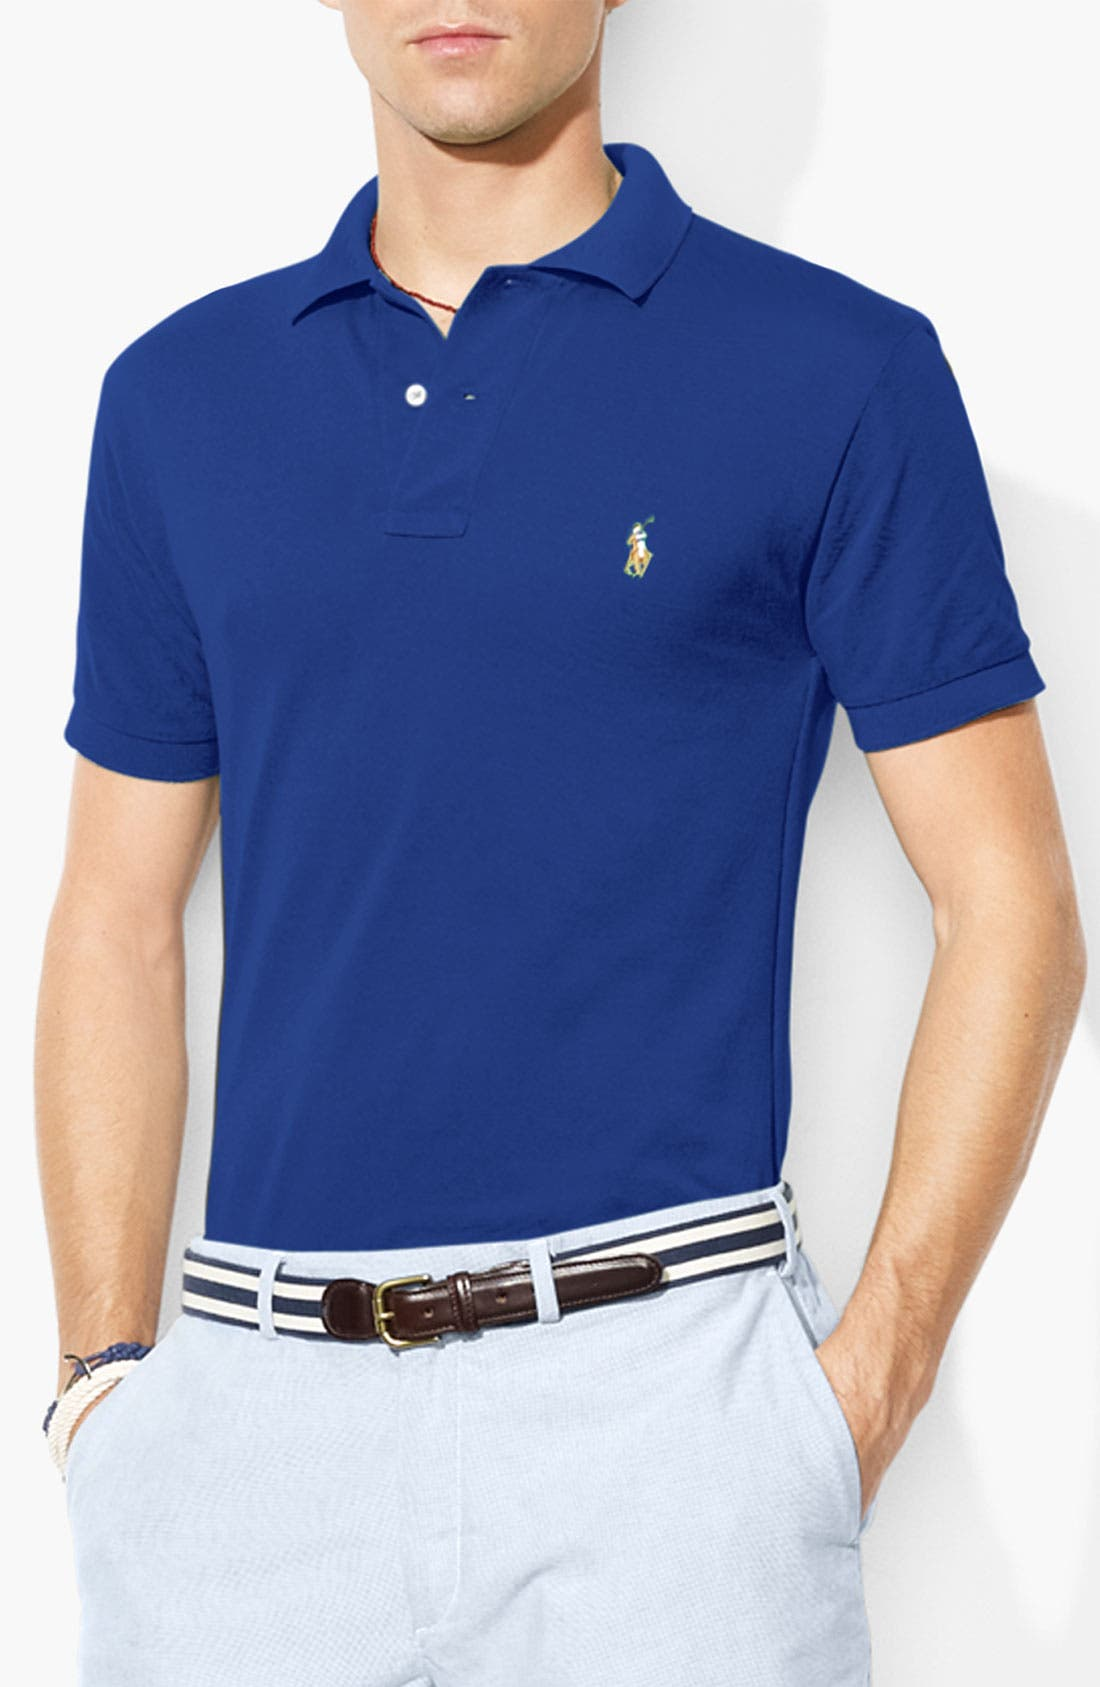 Main Image - Polo Ralph Lauren Mesh Knit Classic Fit Polo